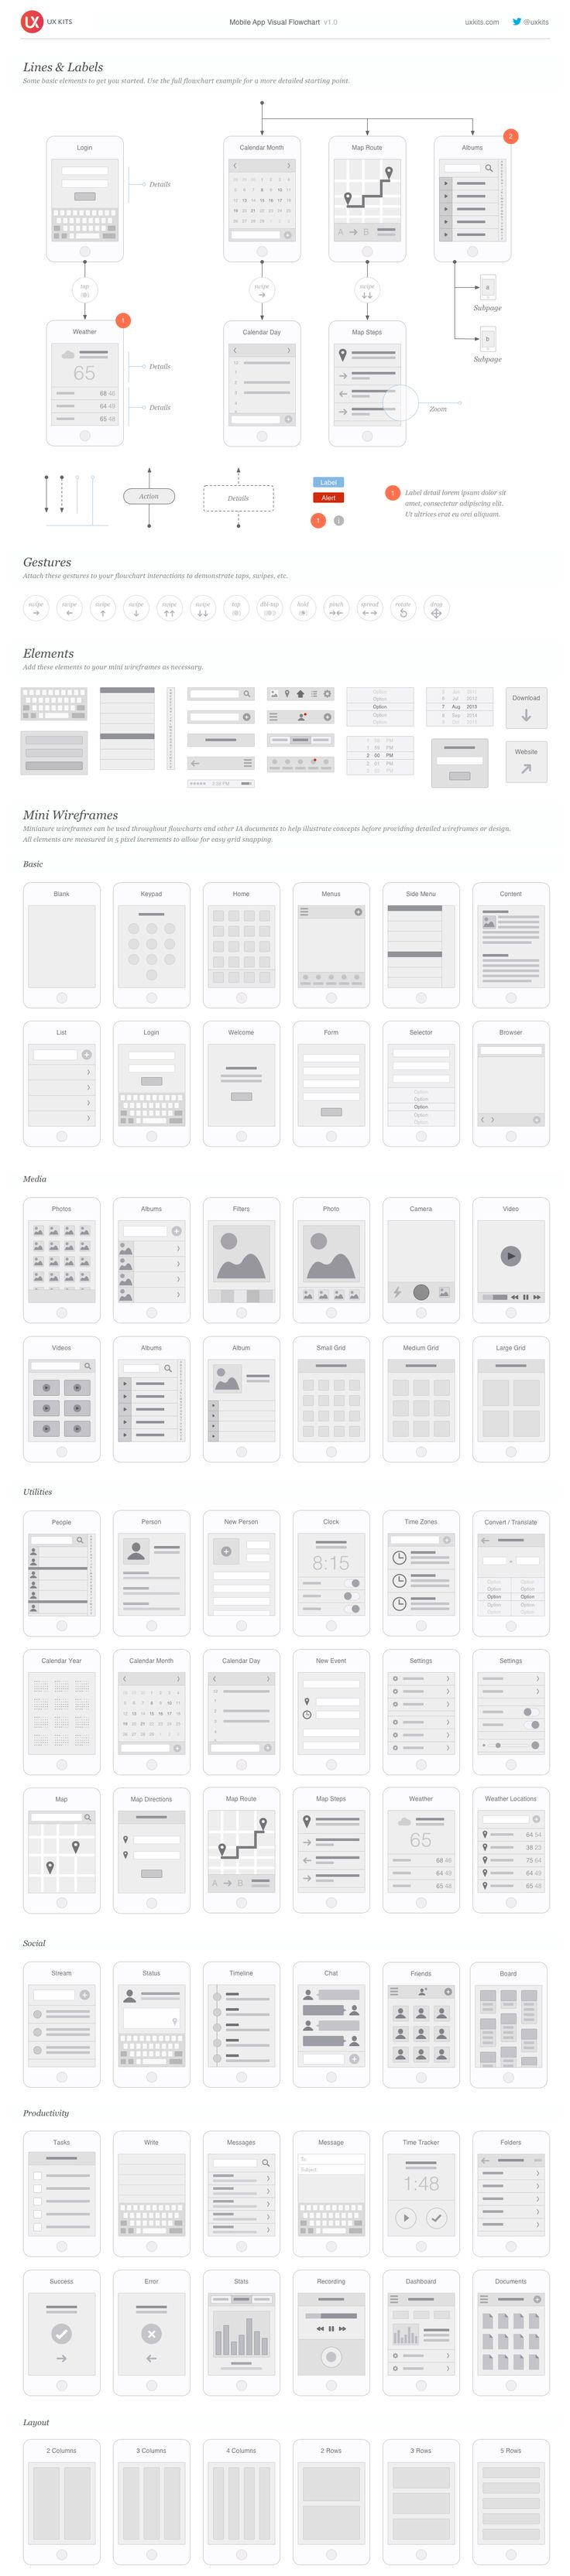 Mobile App Visual Flowchart //damn near every variation you can think of